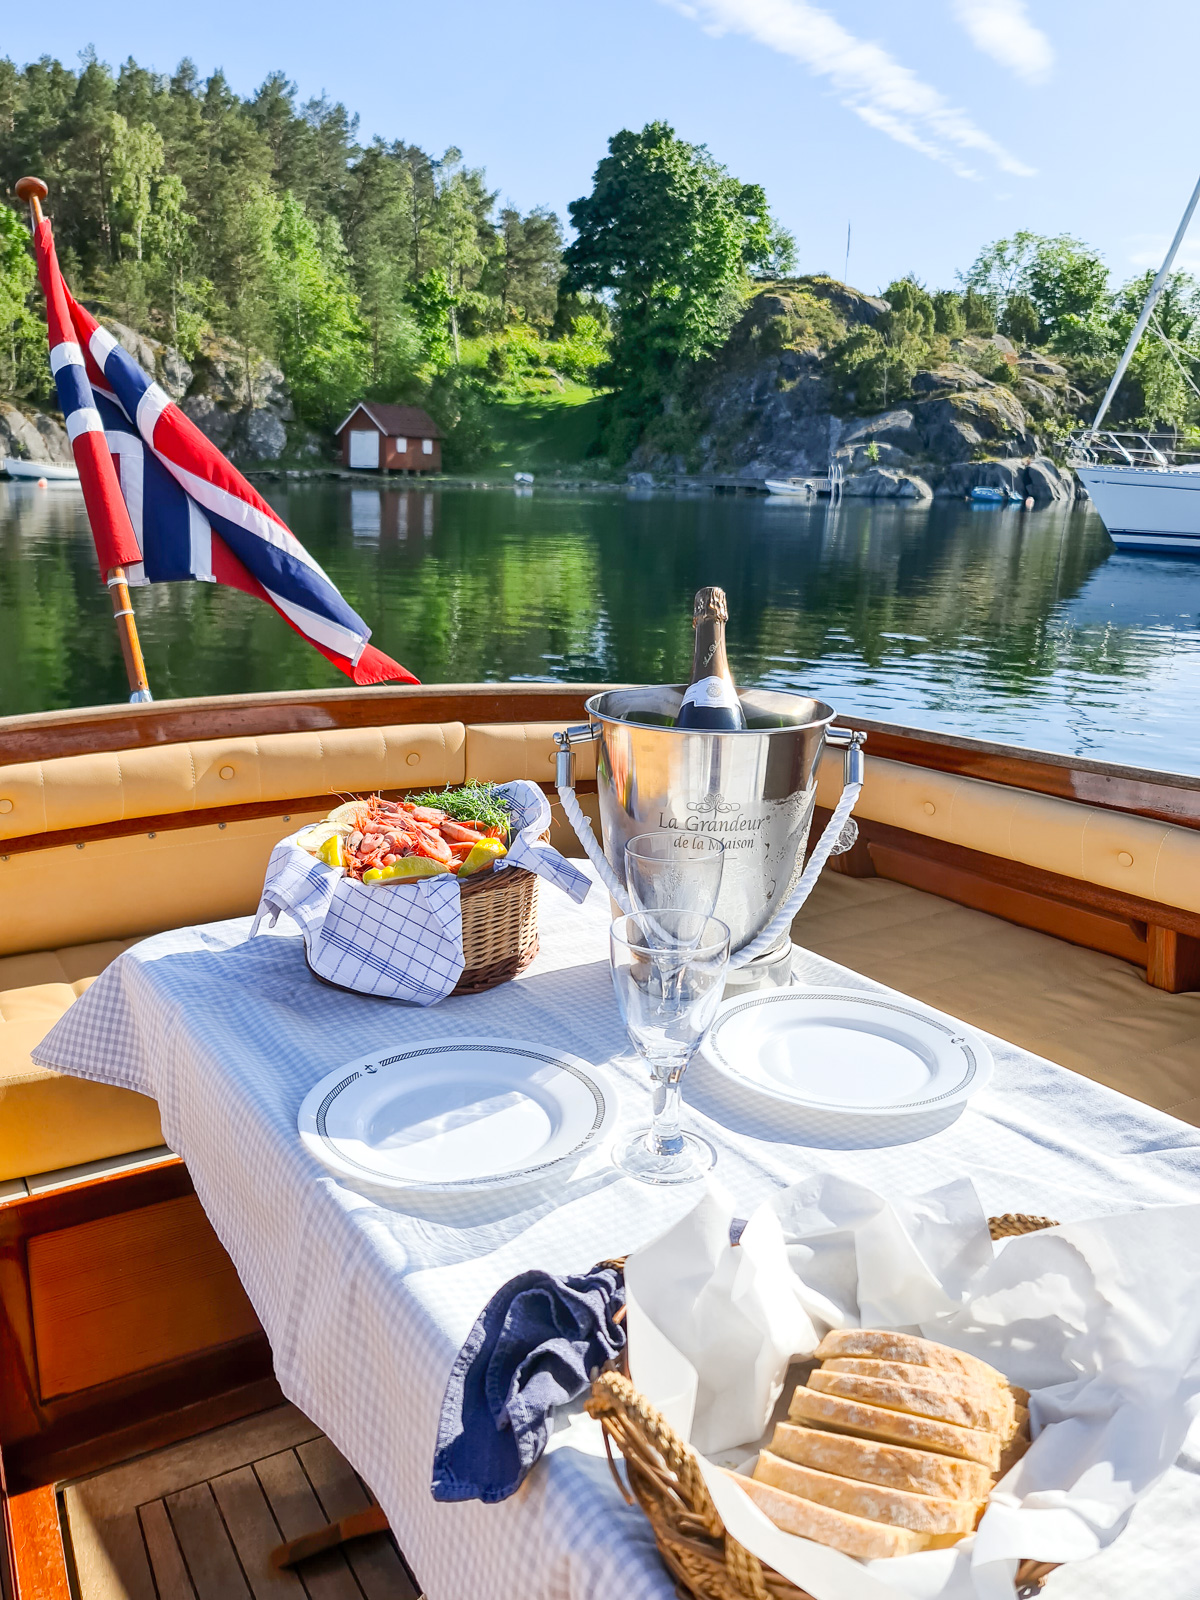 Photo of picnic on board a boat